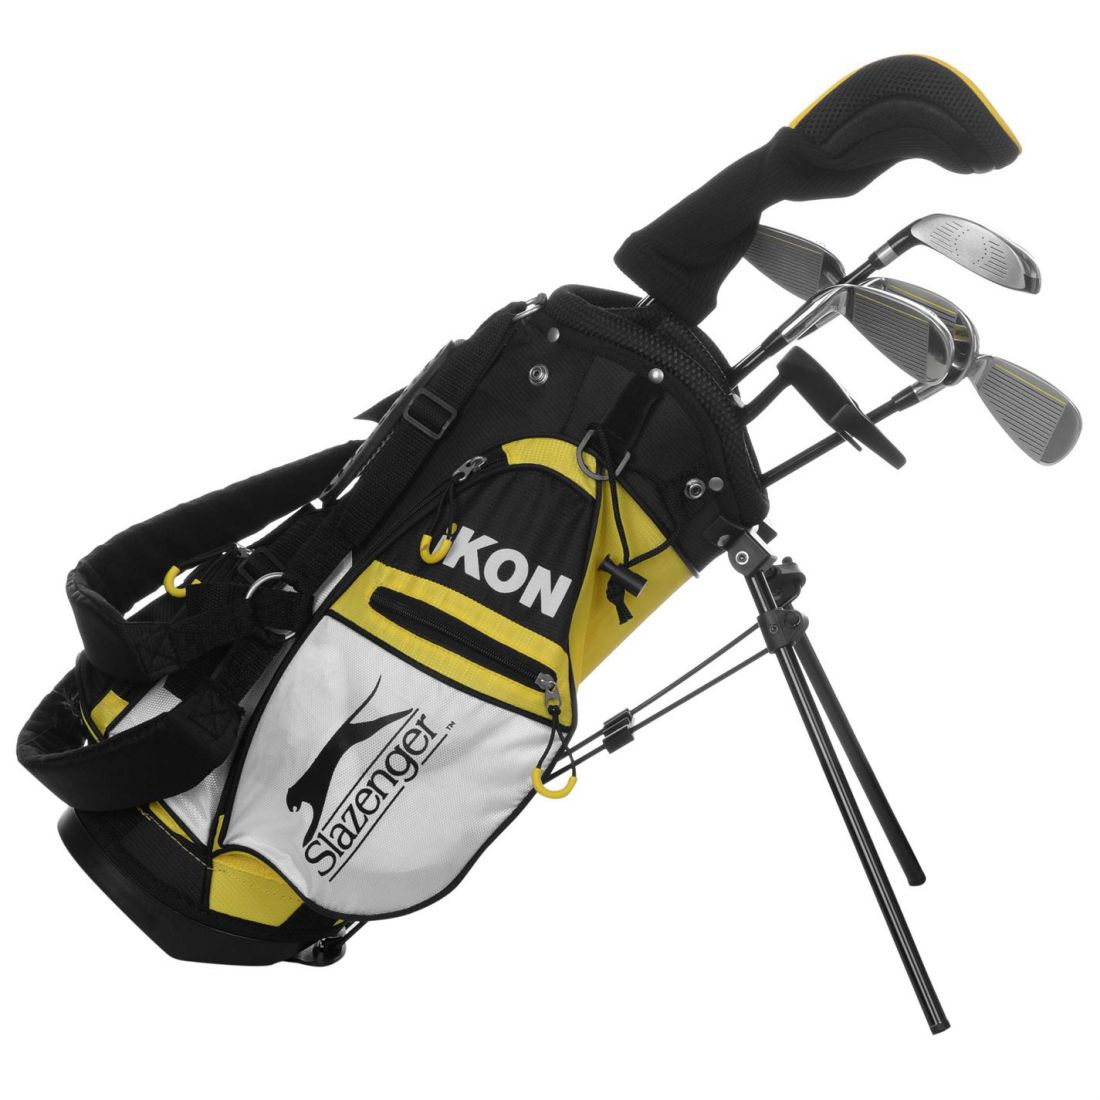 08b5c7d46b Details about Slazenger Kids Ikon Golf Set Junior Graphite